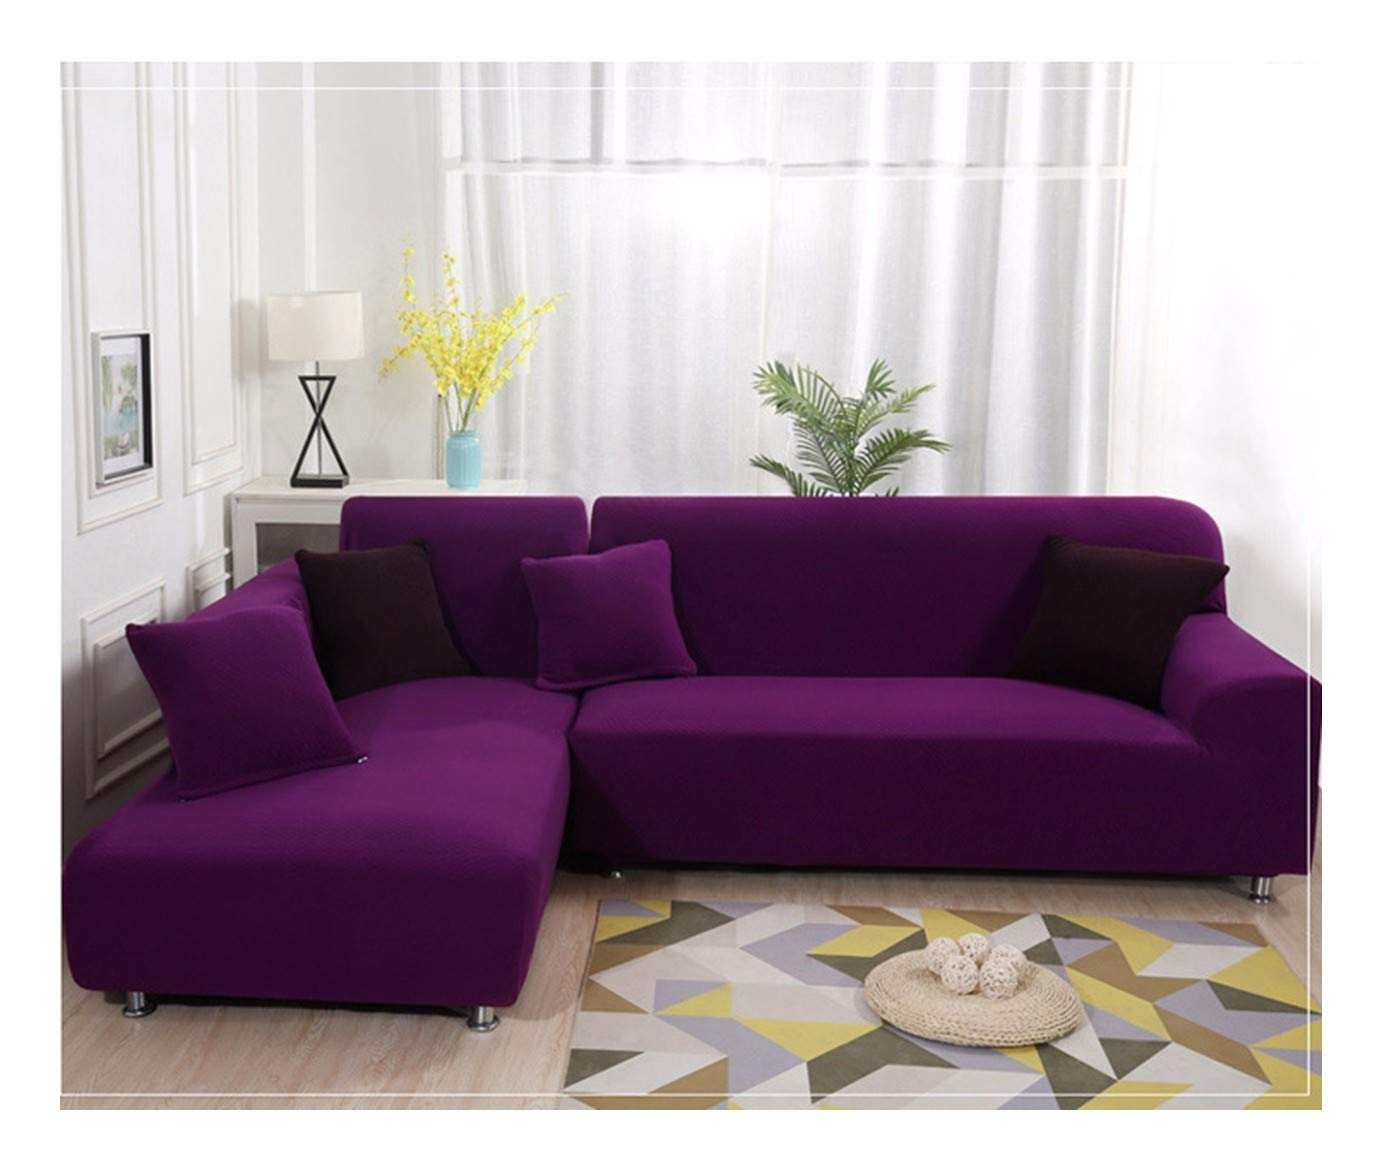 4seat VGUYFUYH Purple Knitted Sofa Cover Polyester Full Package Elasticity Home Universal Sofa Cover Simple Fashion One Set Durable Dust-Proof Pet Dog Predective Cover,4Seat